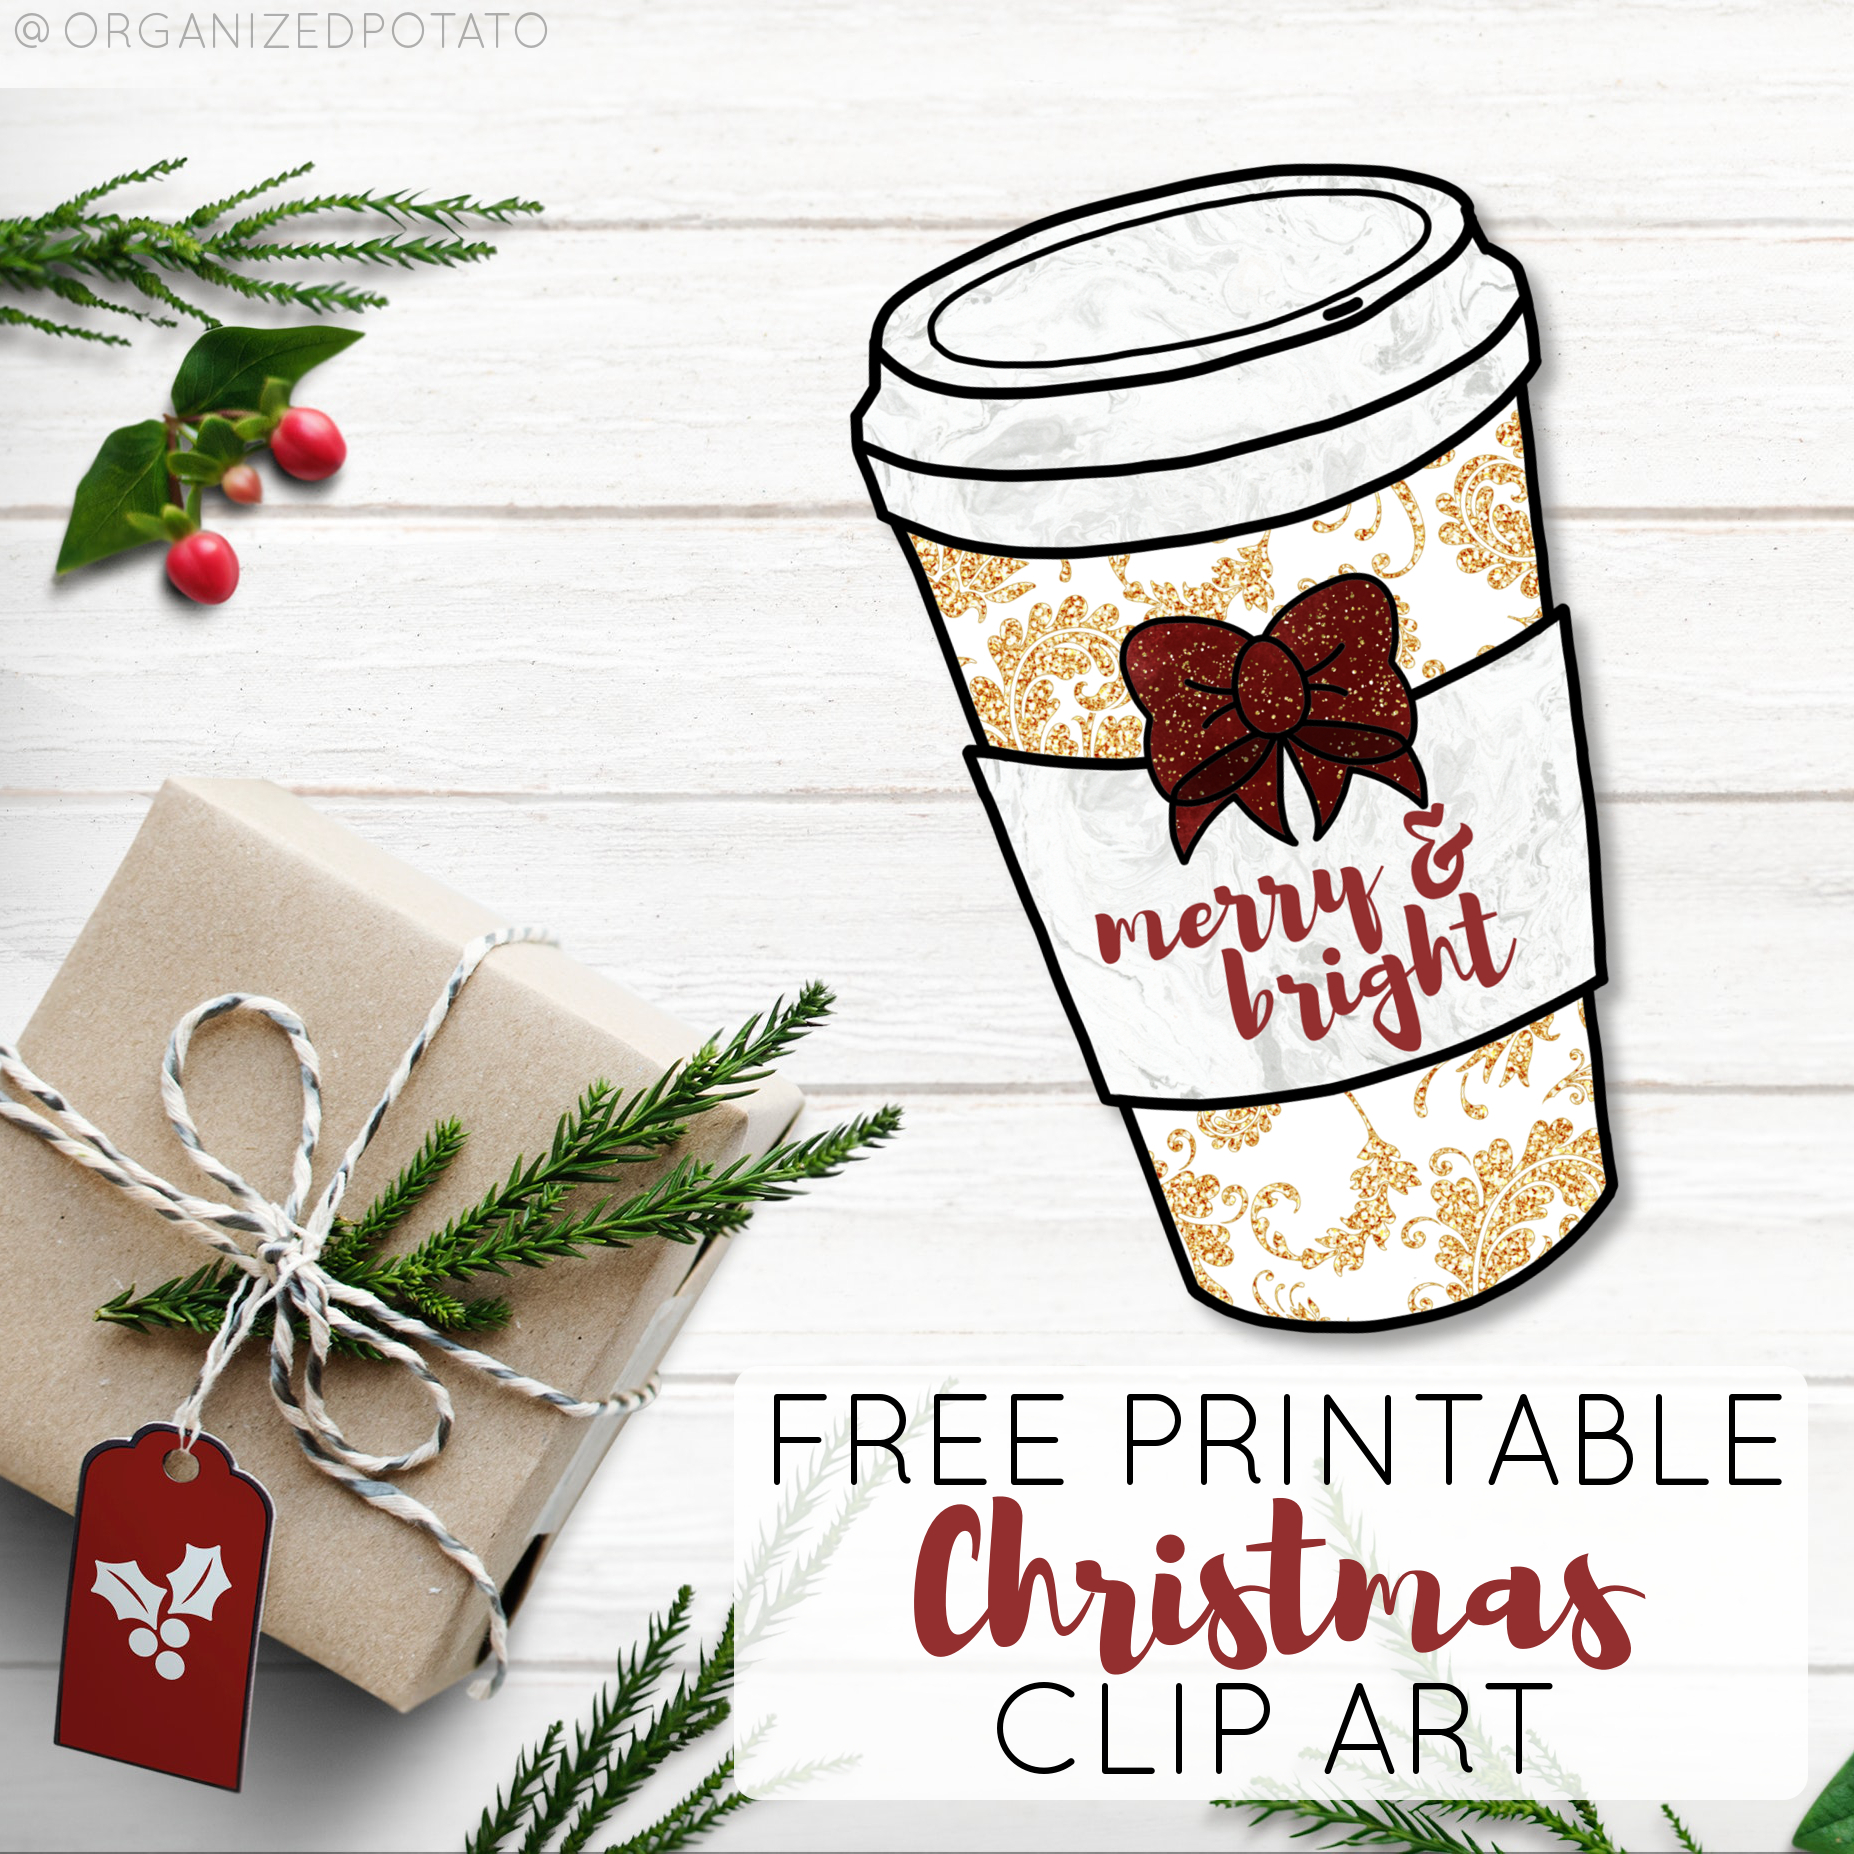 photograph about Free Printable Christmas Clip Art named Merry and Vibrant Espresso Cup Clip Artwork and Do it yourself Wall Artwork